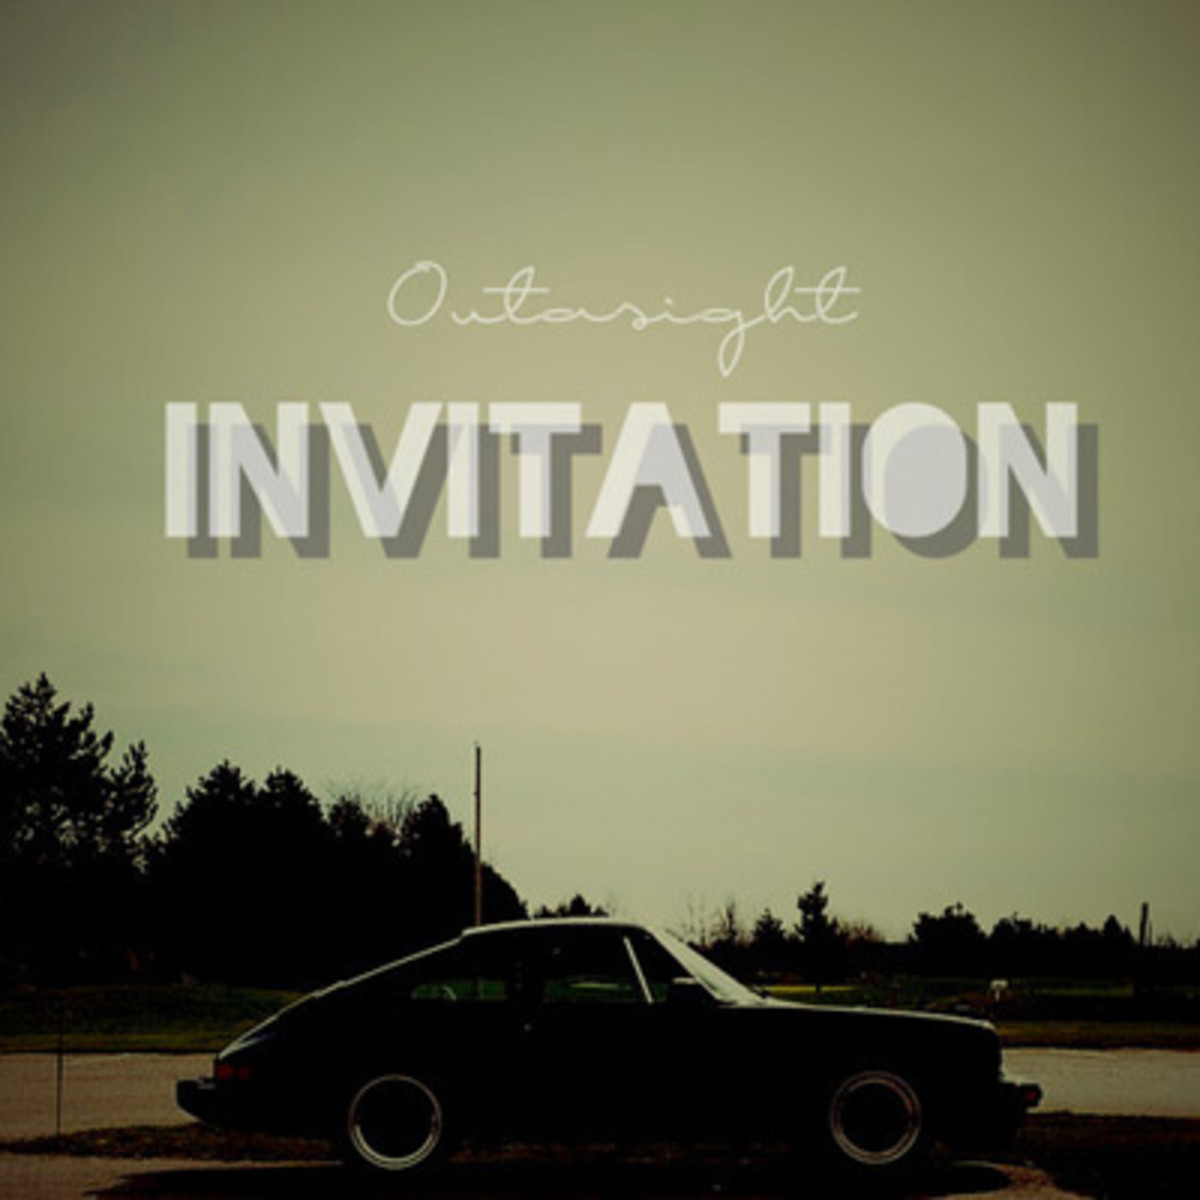 outasight-invitation.jpg